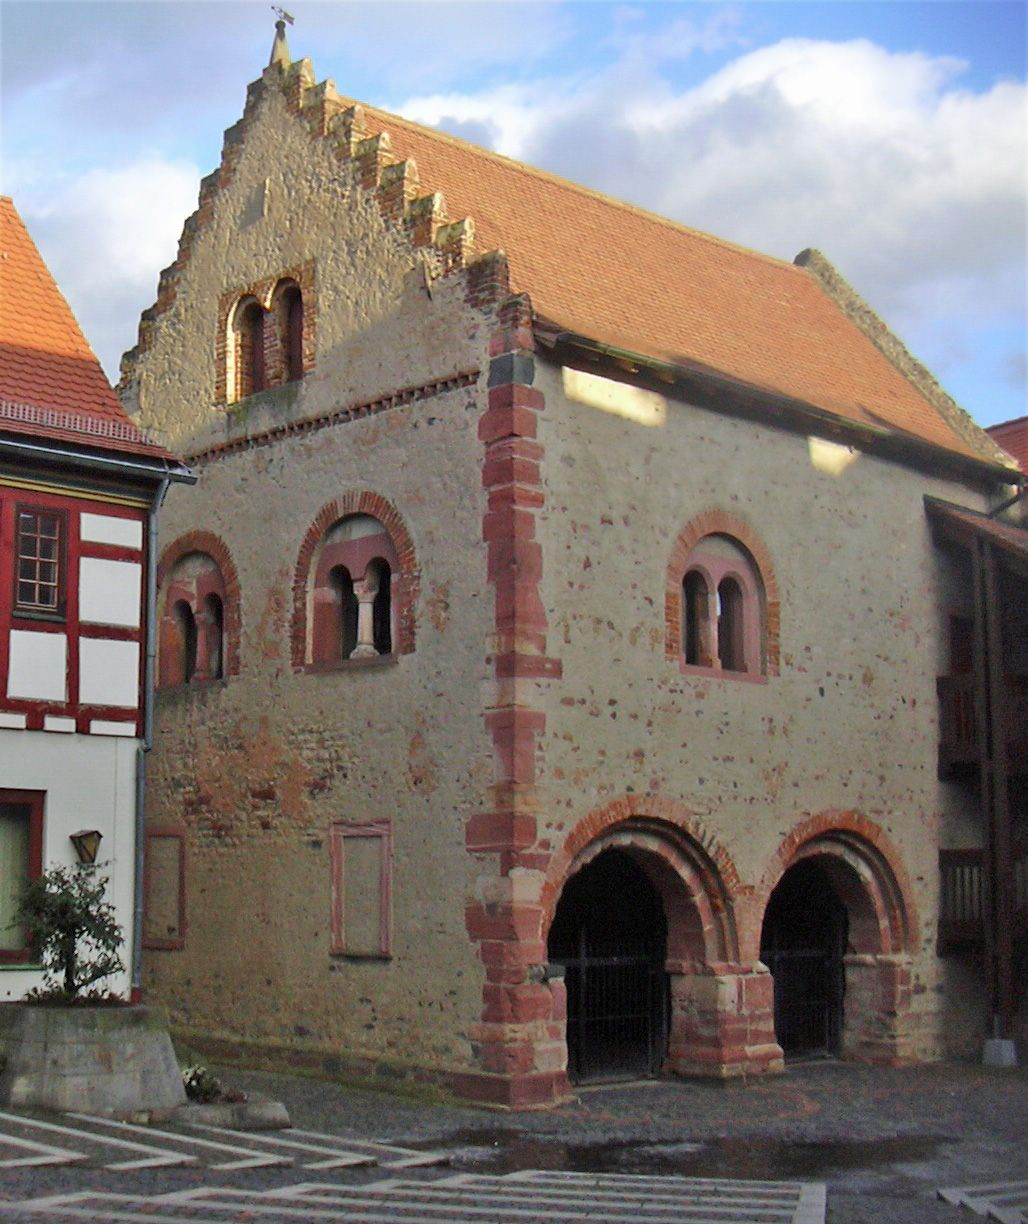 Il Seligenstadt 12th century house of the local ruler in seligenstadt germany with